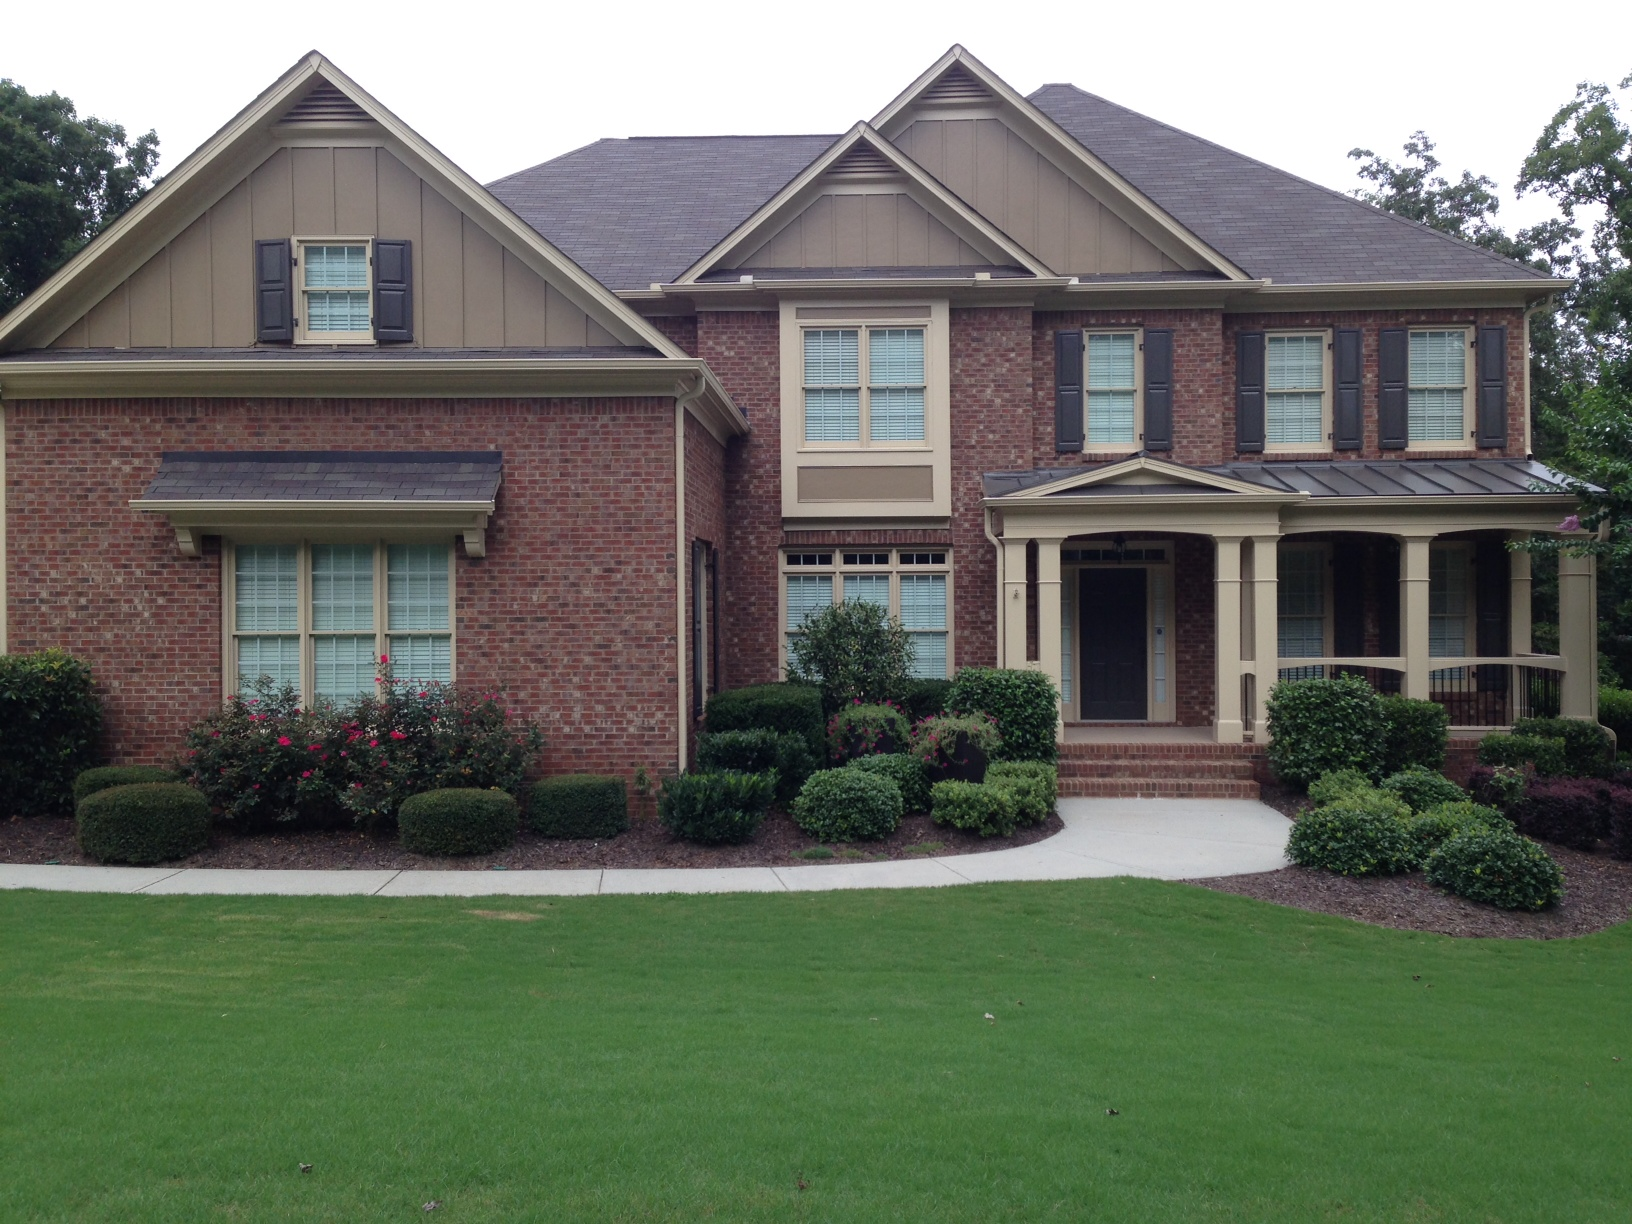 Exterior paint colors with red brick - give your house a ... on Brick House Painting Ideas  id=46735